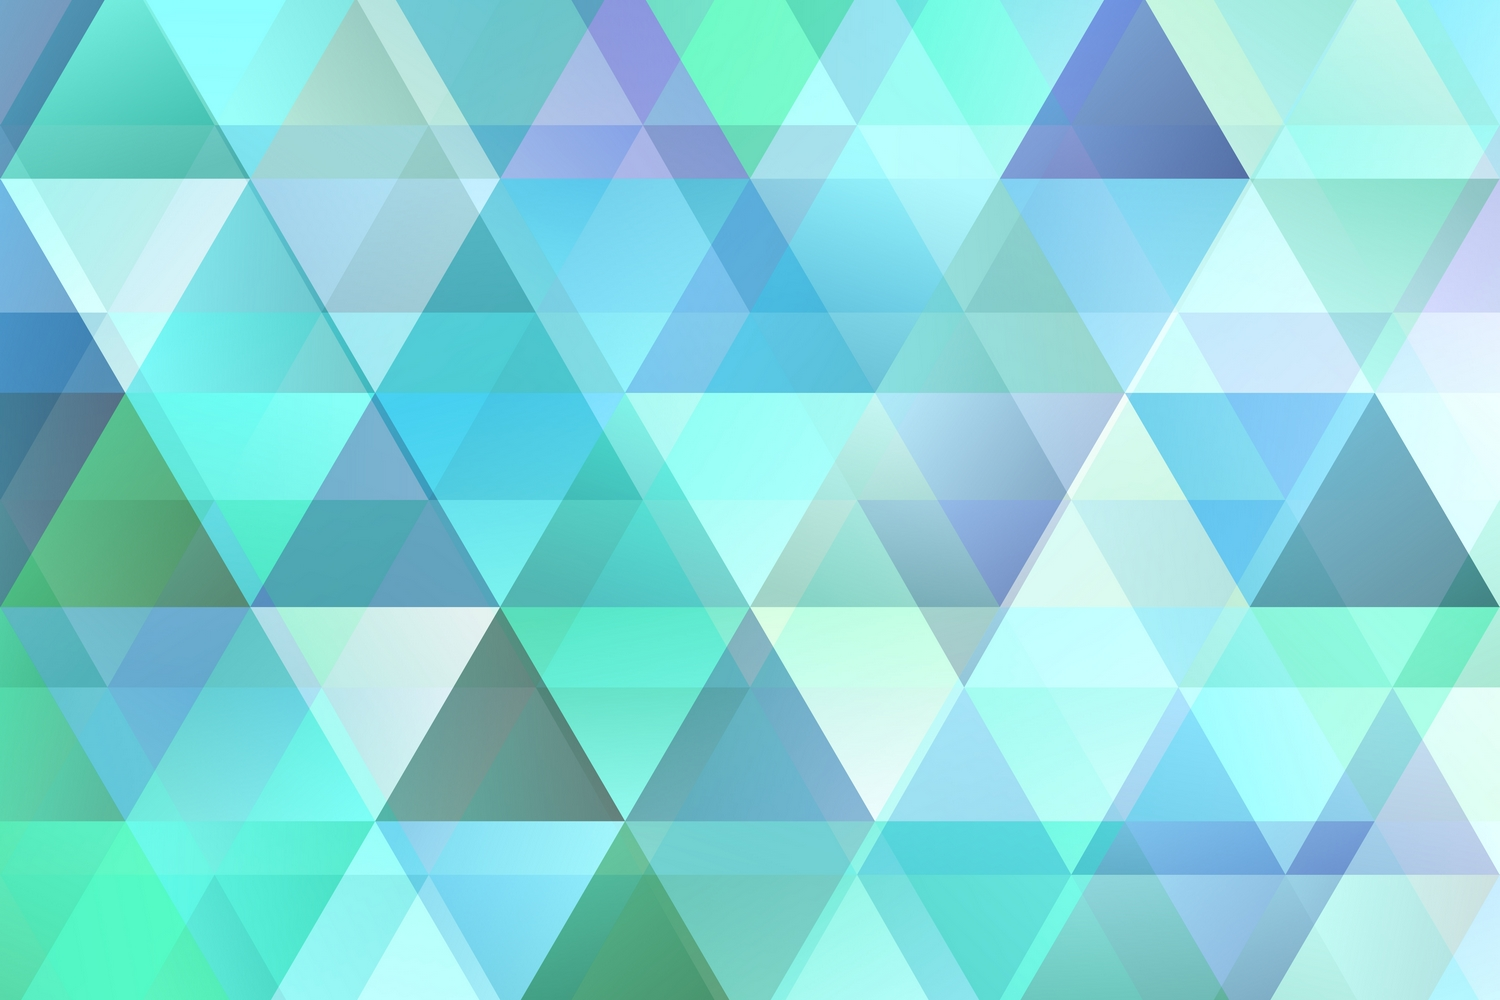 24 Gradient Polygon Backgrounds AI, EPS, JPG 5000x5000 example image 9